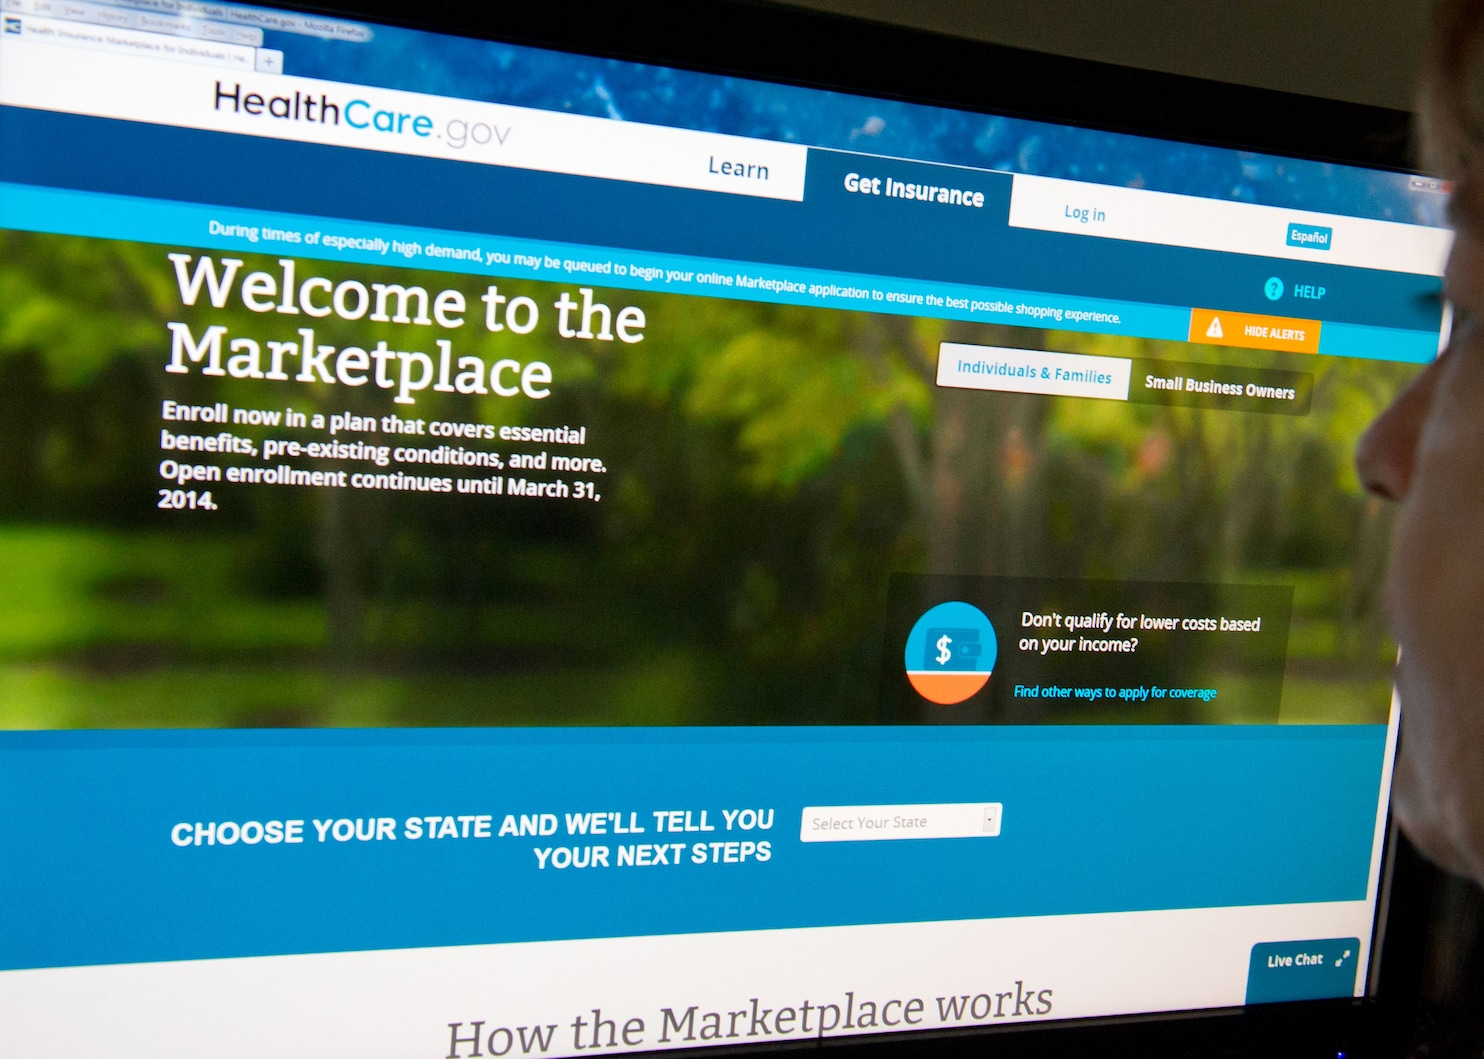 Government investigators were able to procure health plans and federal subsidies for fake applicants. (Karen Bleier/AFP/Getty Images)